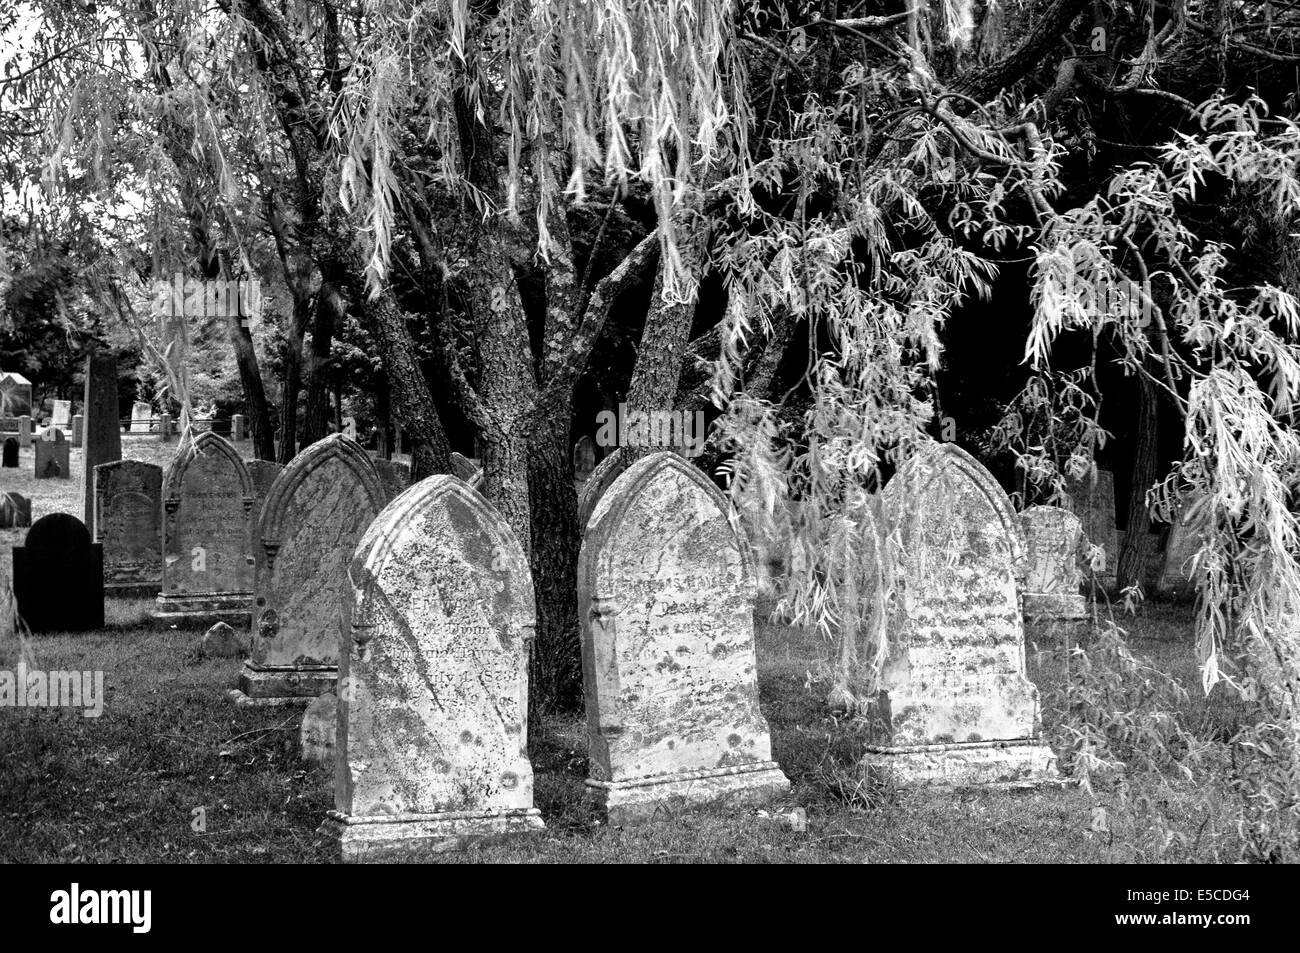 Old gravestones from the 1800s are found in this cemetery in Cape Cod, Massachusetts (MA), USA. B&W image. - Stock Image